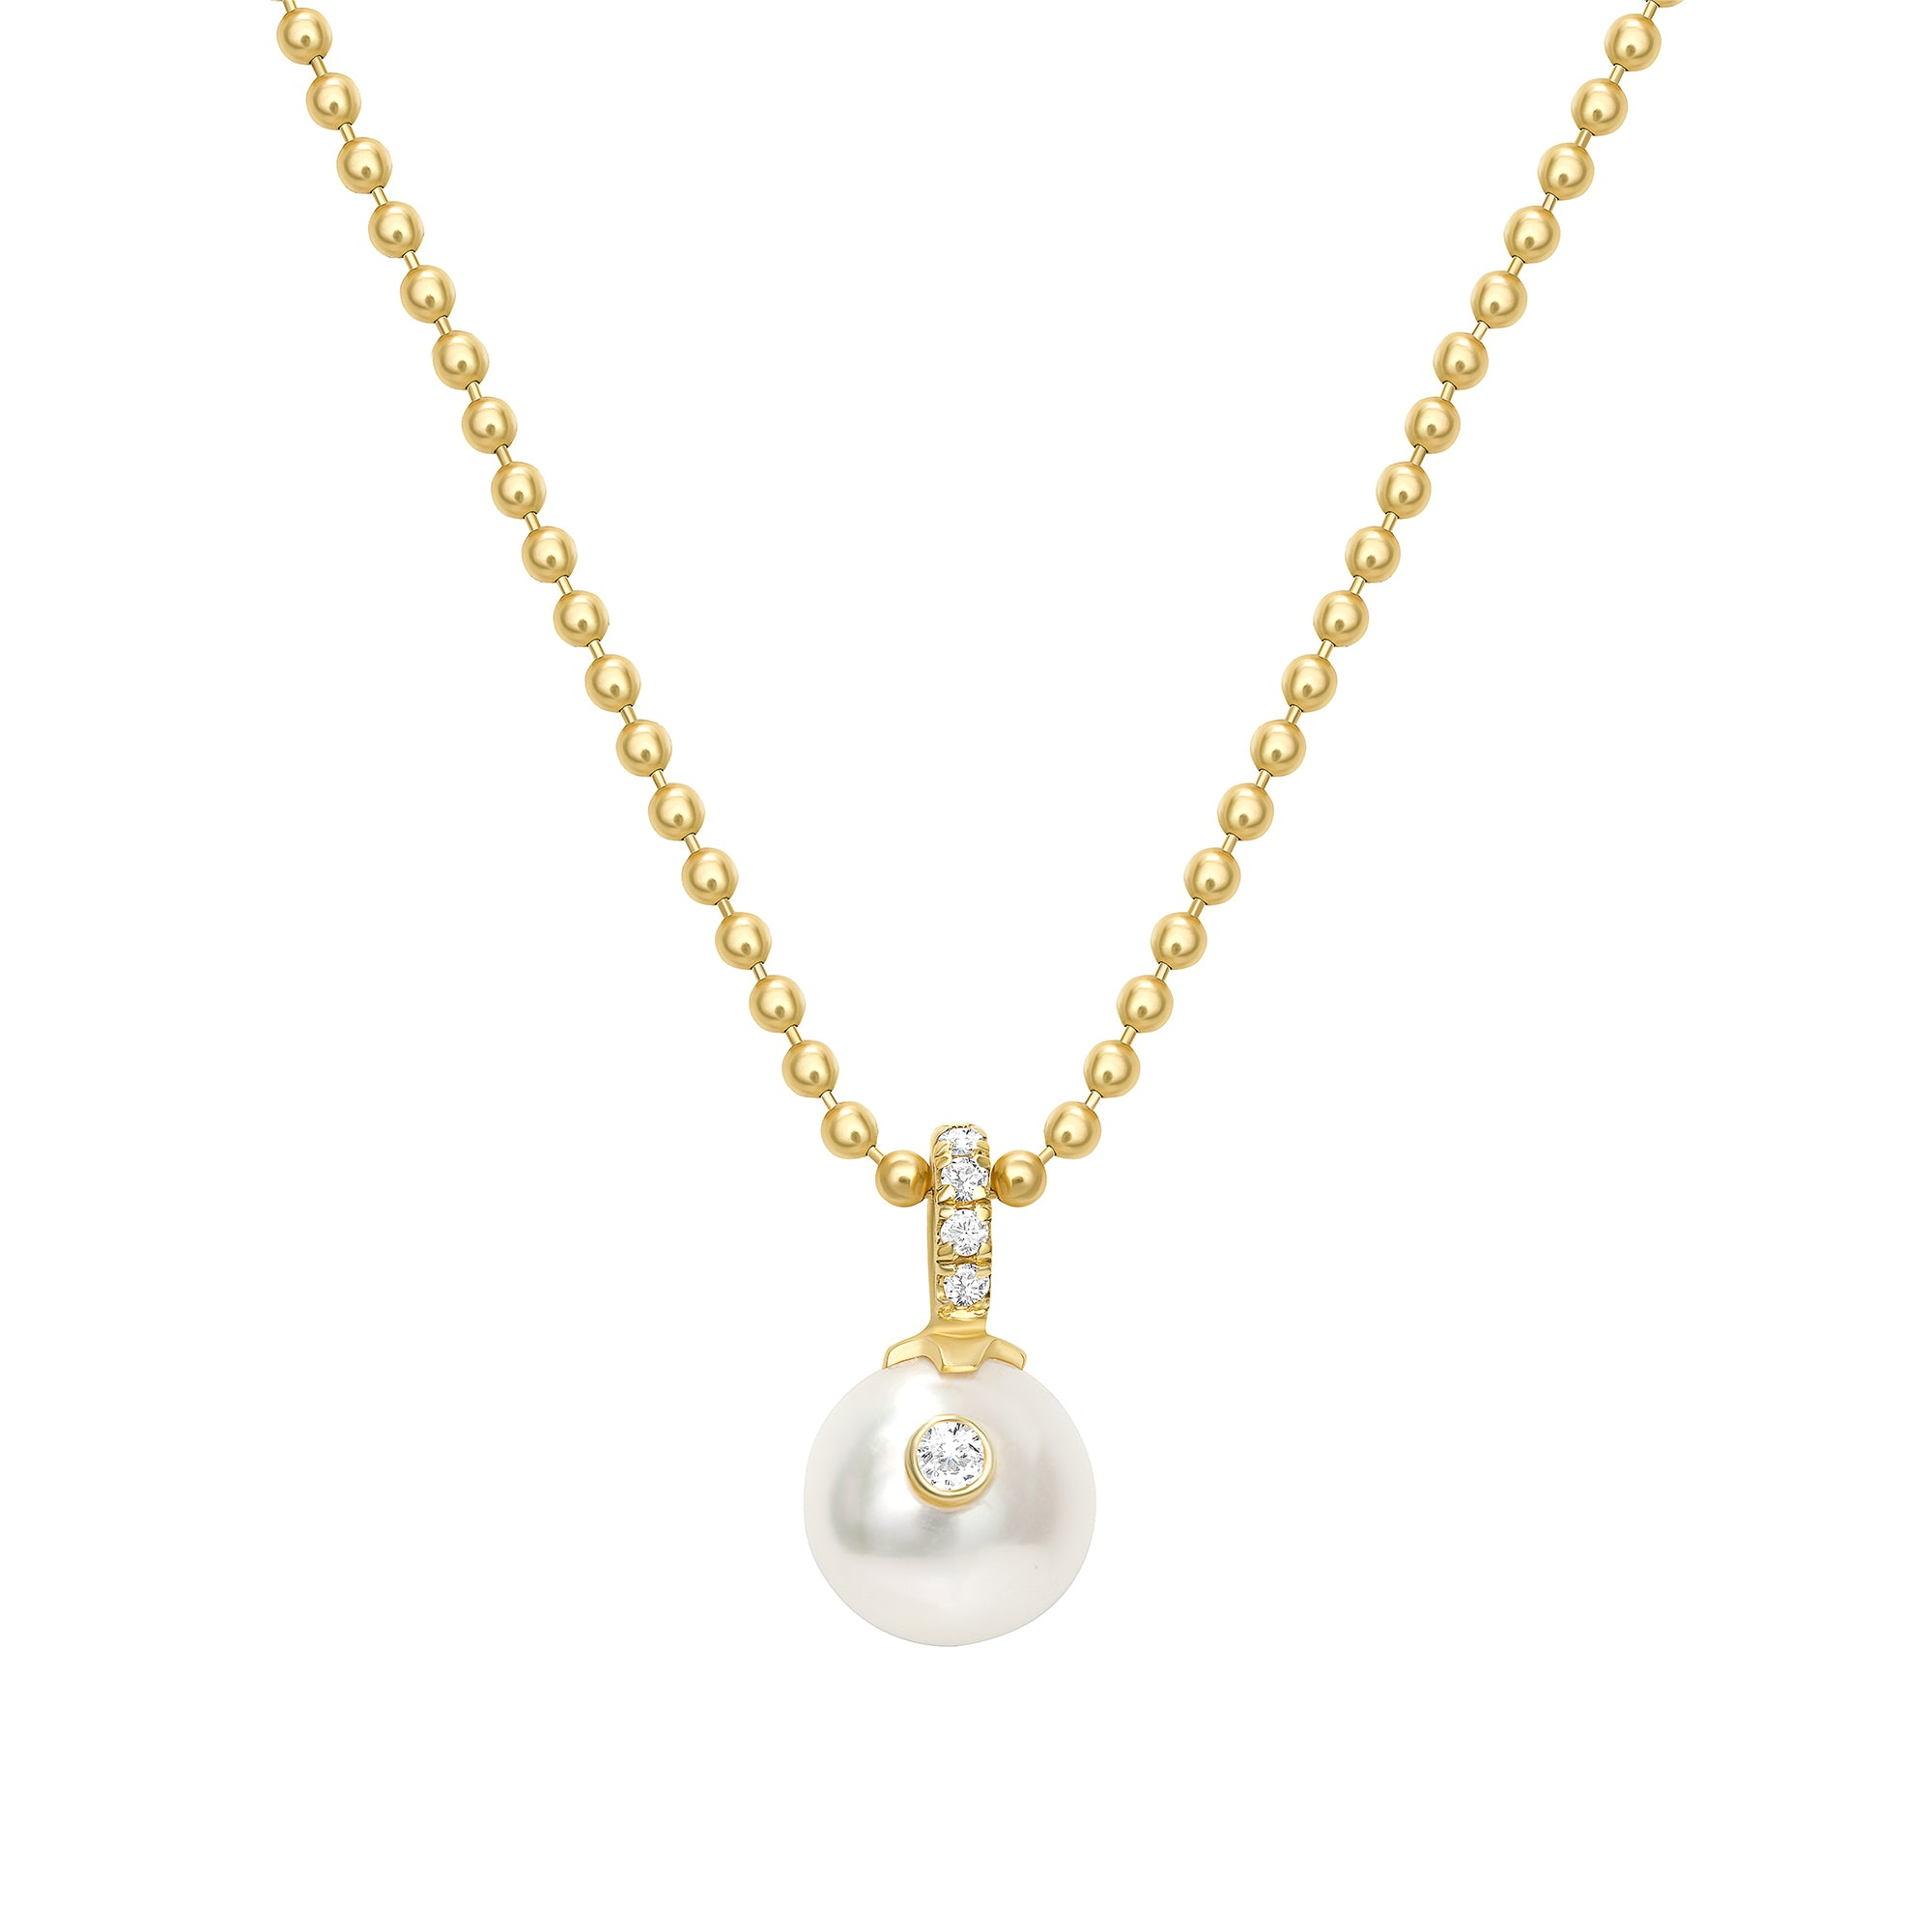 SINGLE PEARL NECKLACE - MAKKO